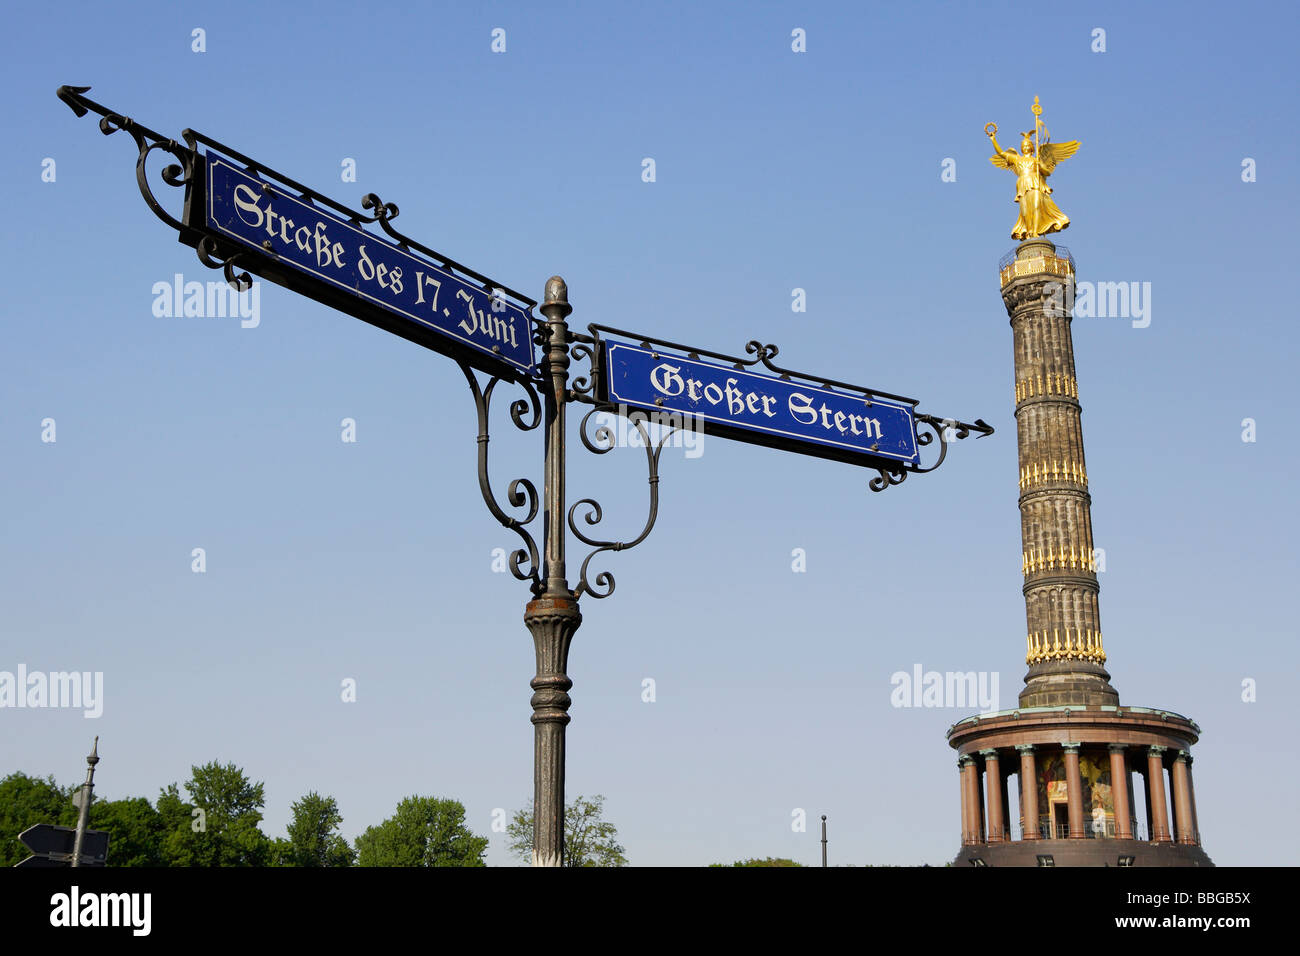 Street sign on the corner of Strasse des 17. Juni and Grosser Stern, Street of the 17th June and Great Star, statue - Stock Image